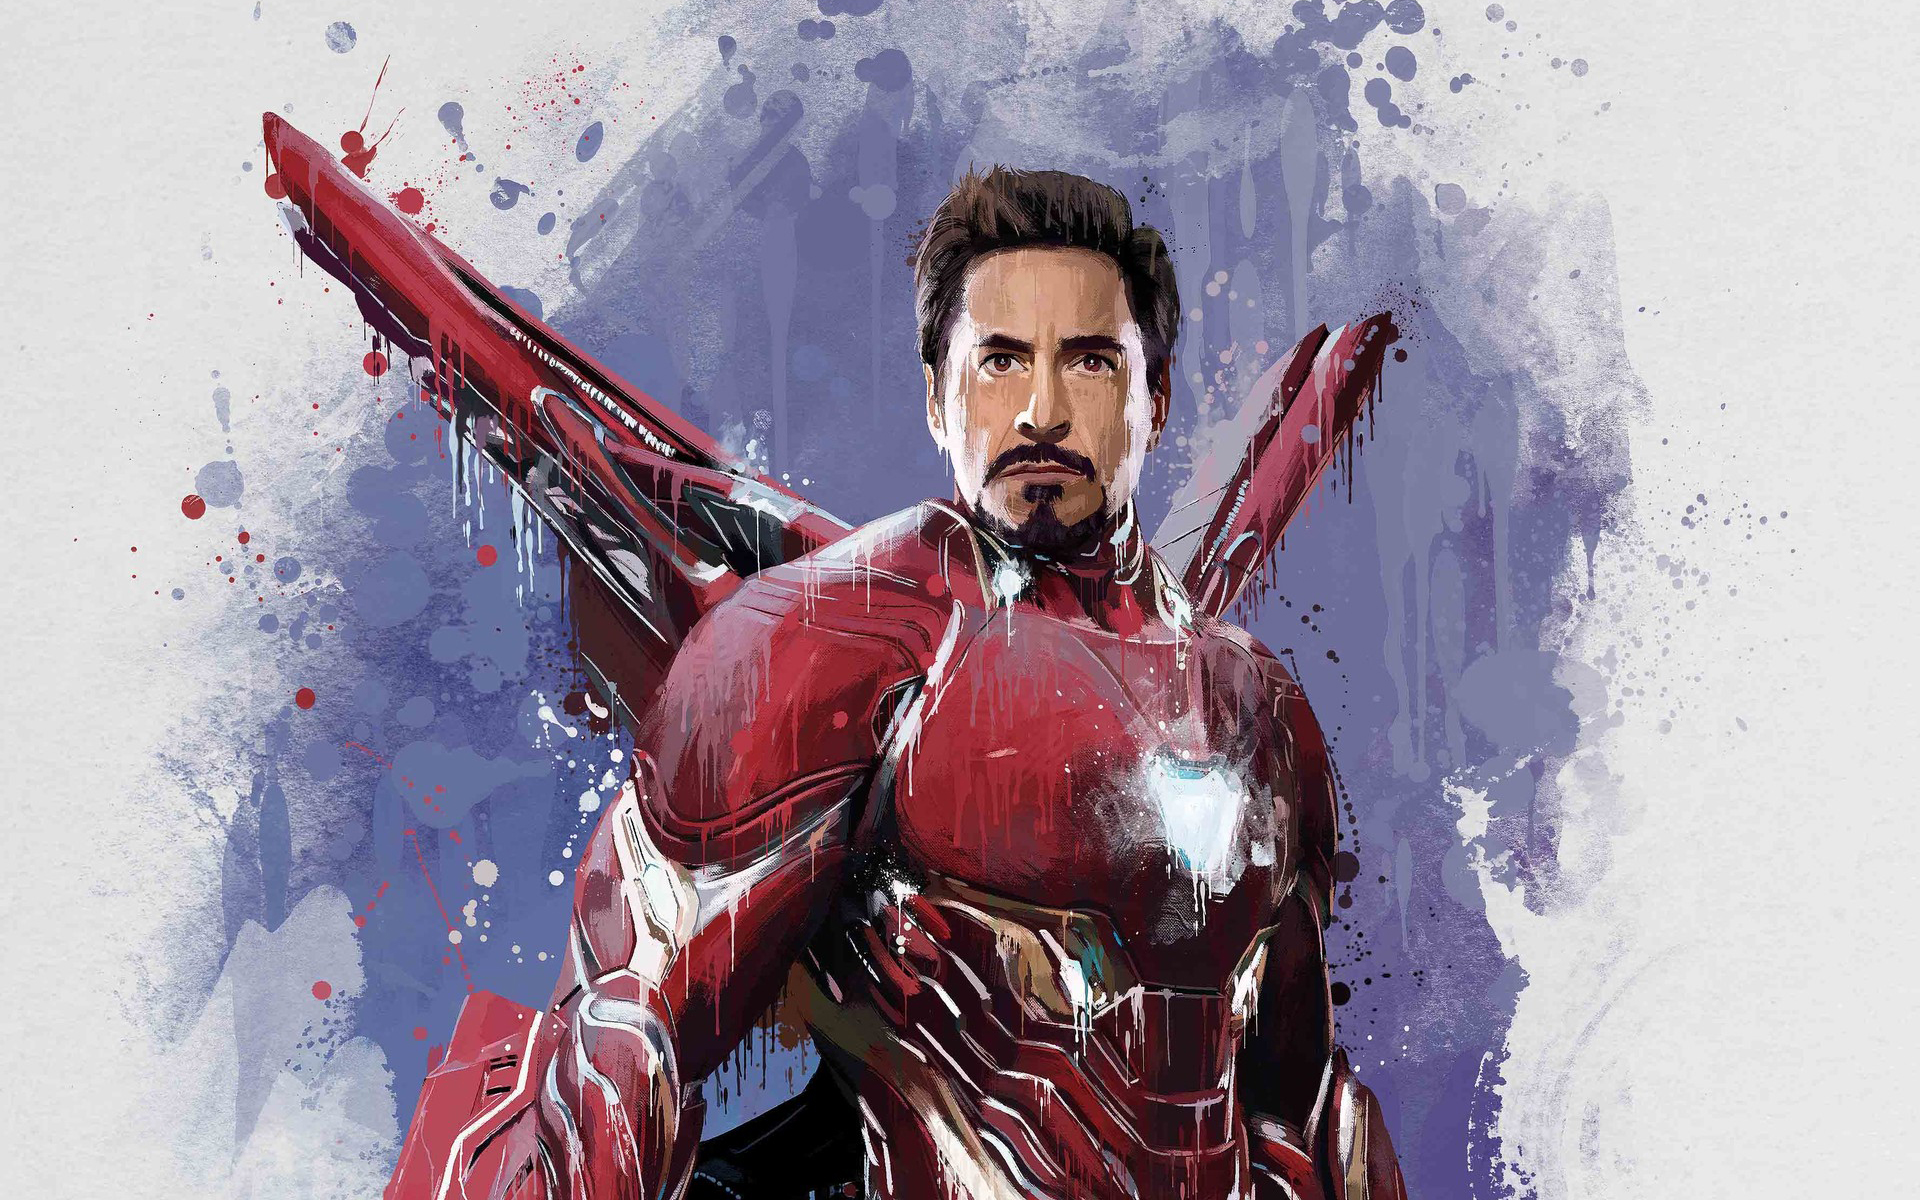 Iron Man Infinity War Hd Wallpapers For Android 2261650